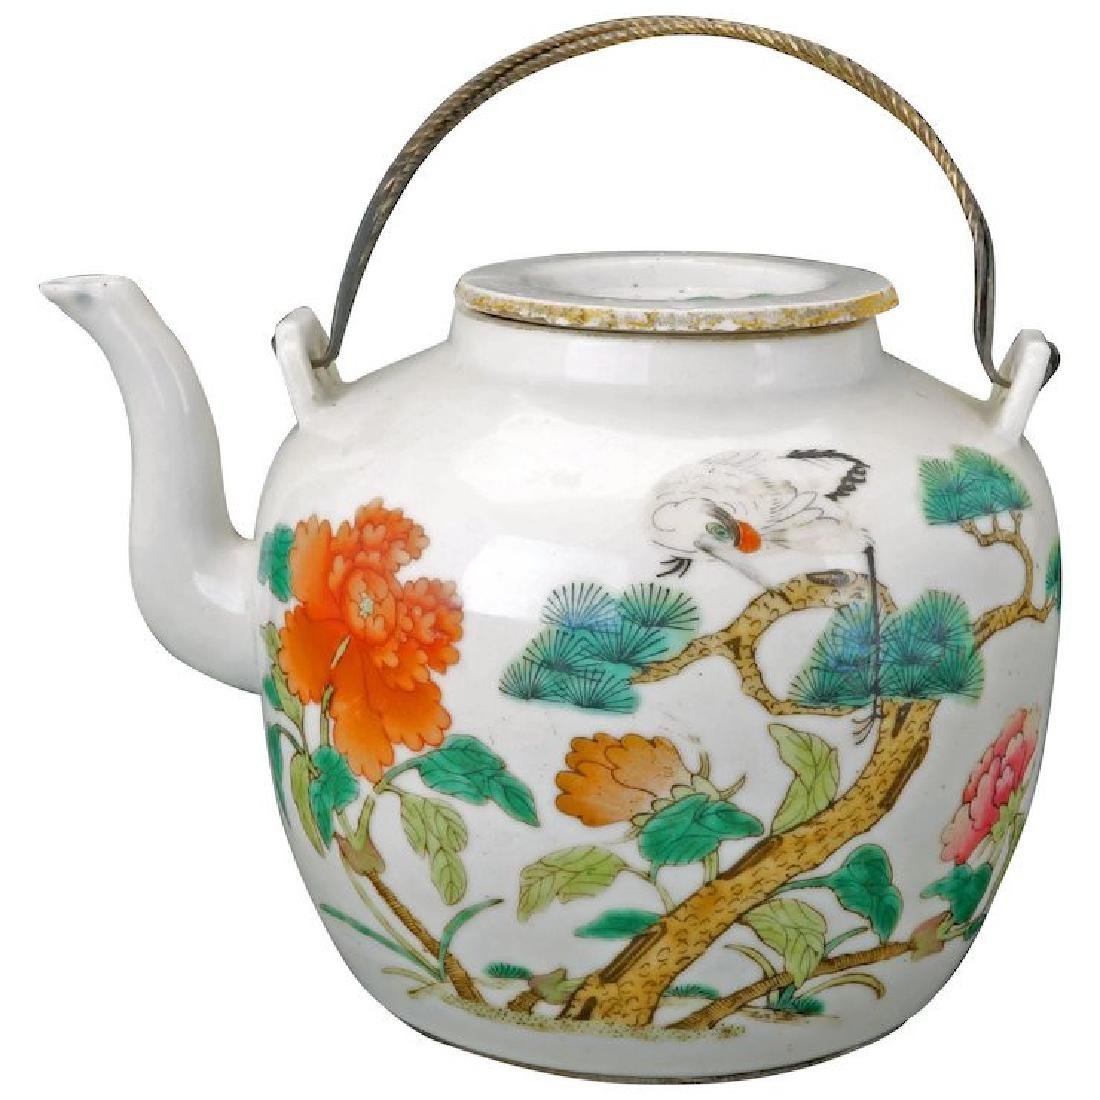 Chinese famille rose porcelain teapot with over glaze